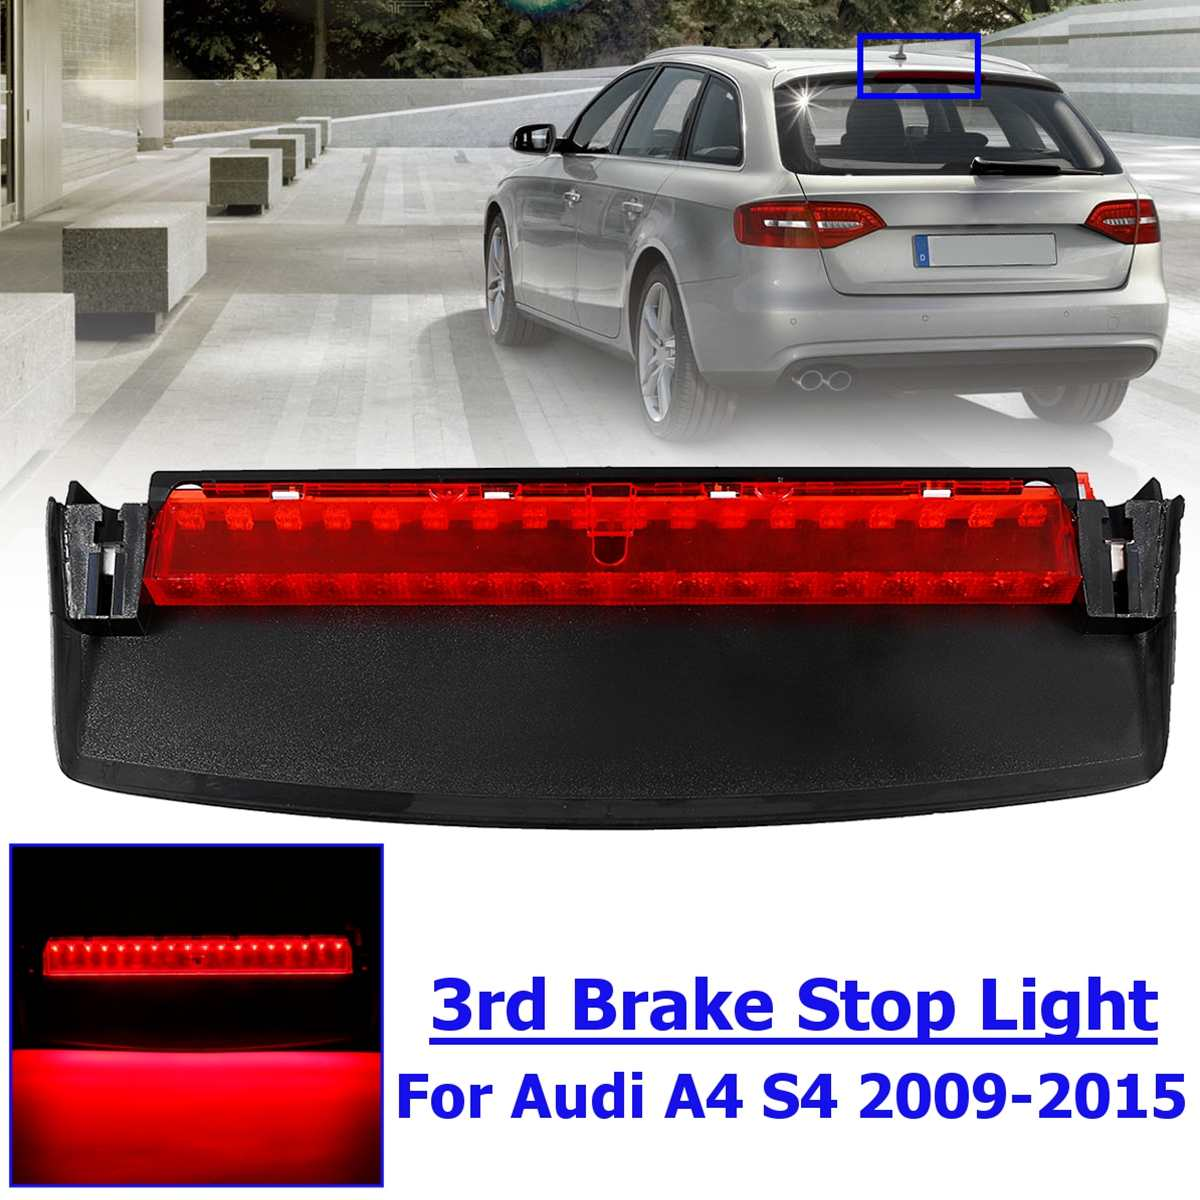 For <font><b>Audi</b></font> <font><b>A4</b></font> Quattro S4 2009 2010 2011 <font><b>2012</b></font> 2013 2014 2015 8K5945097 Rear LED Third High Brake Mount Stop Lamp Light image